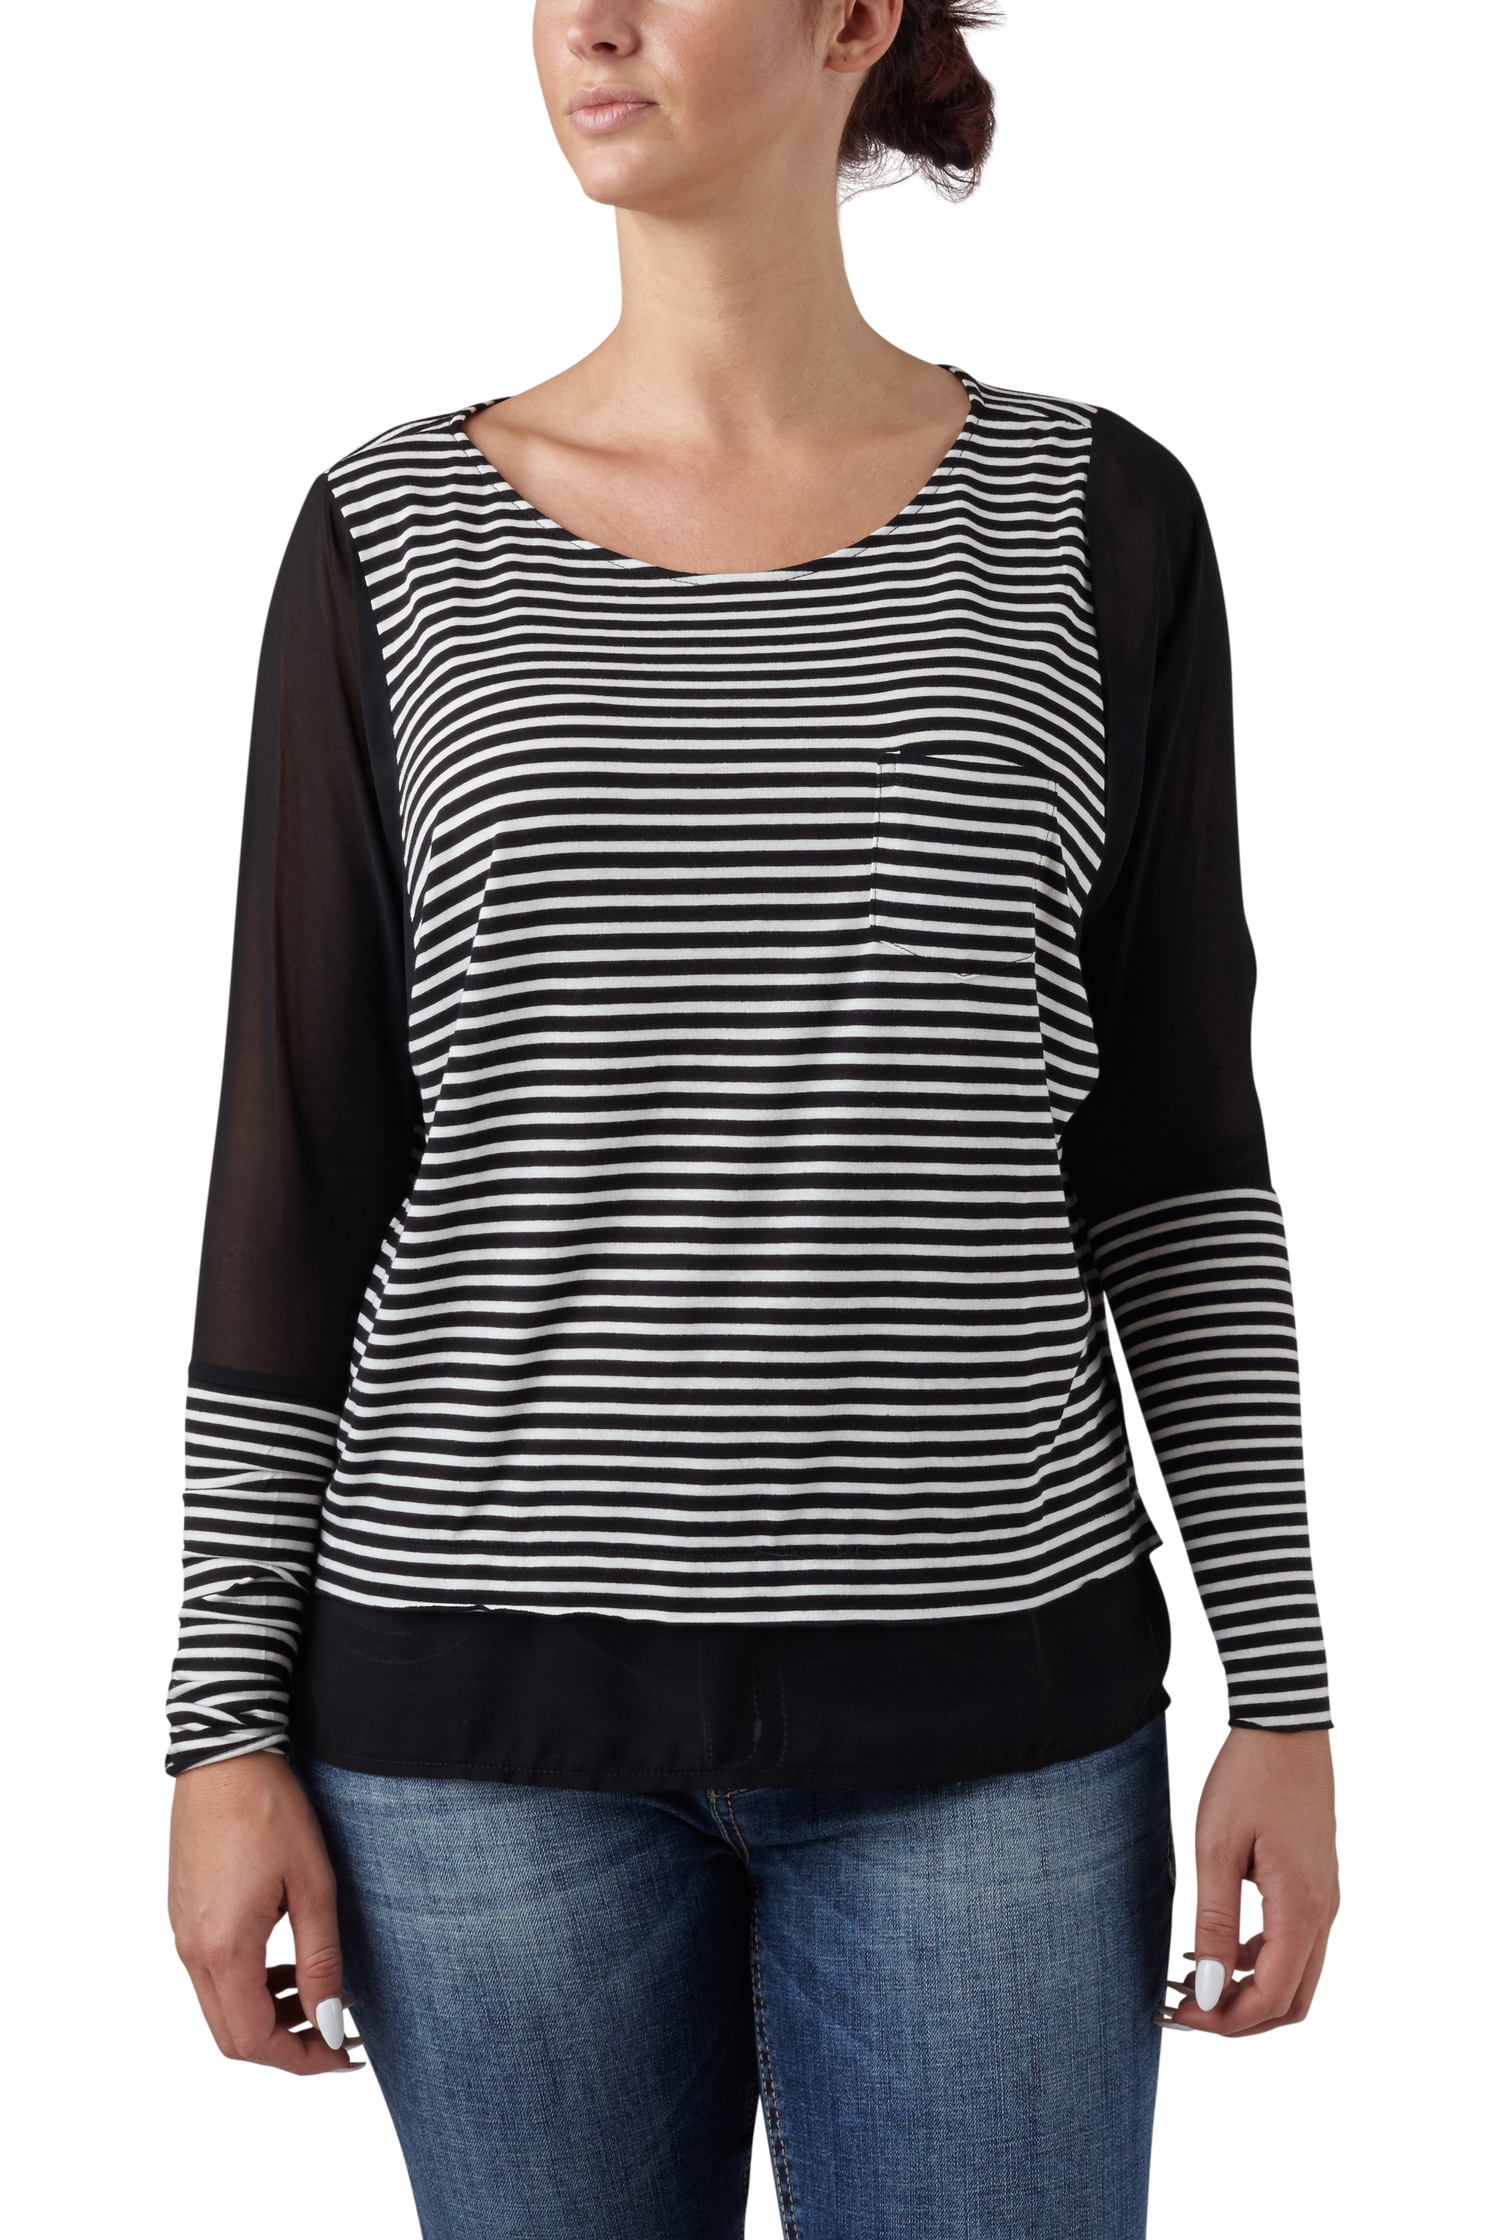 seven7 jeans striped tee